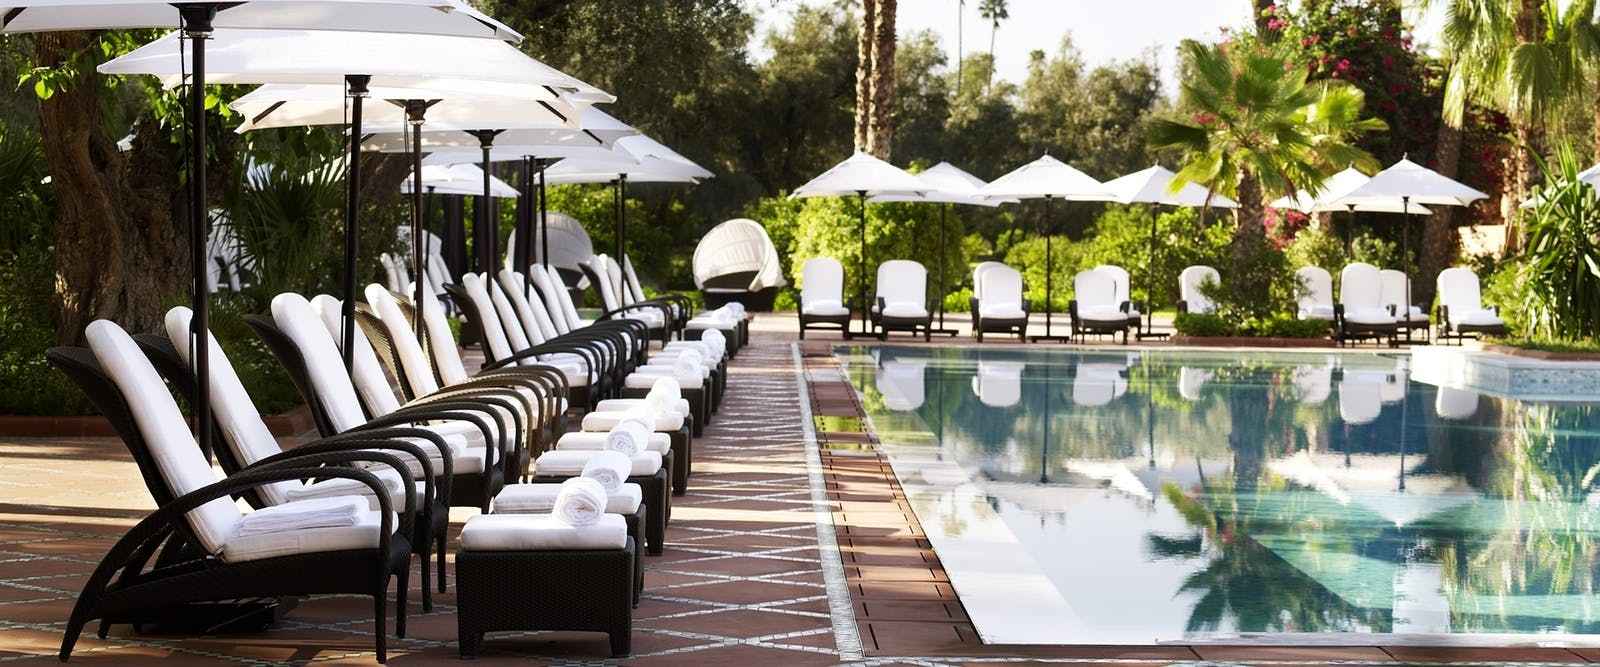 Swimming Pool at La Mamounia, Marrakech, Morocco